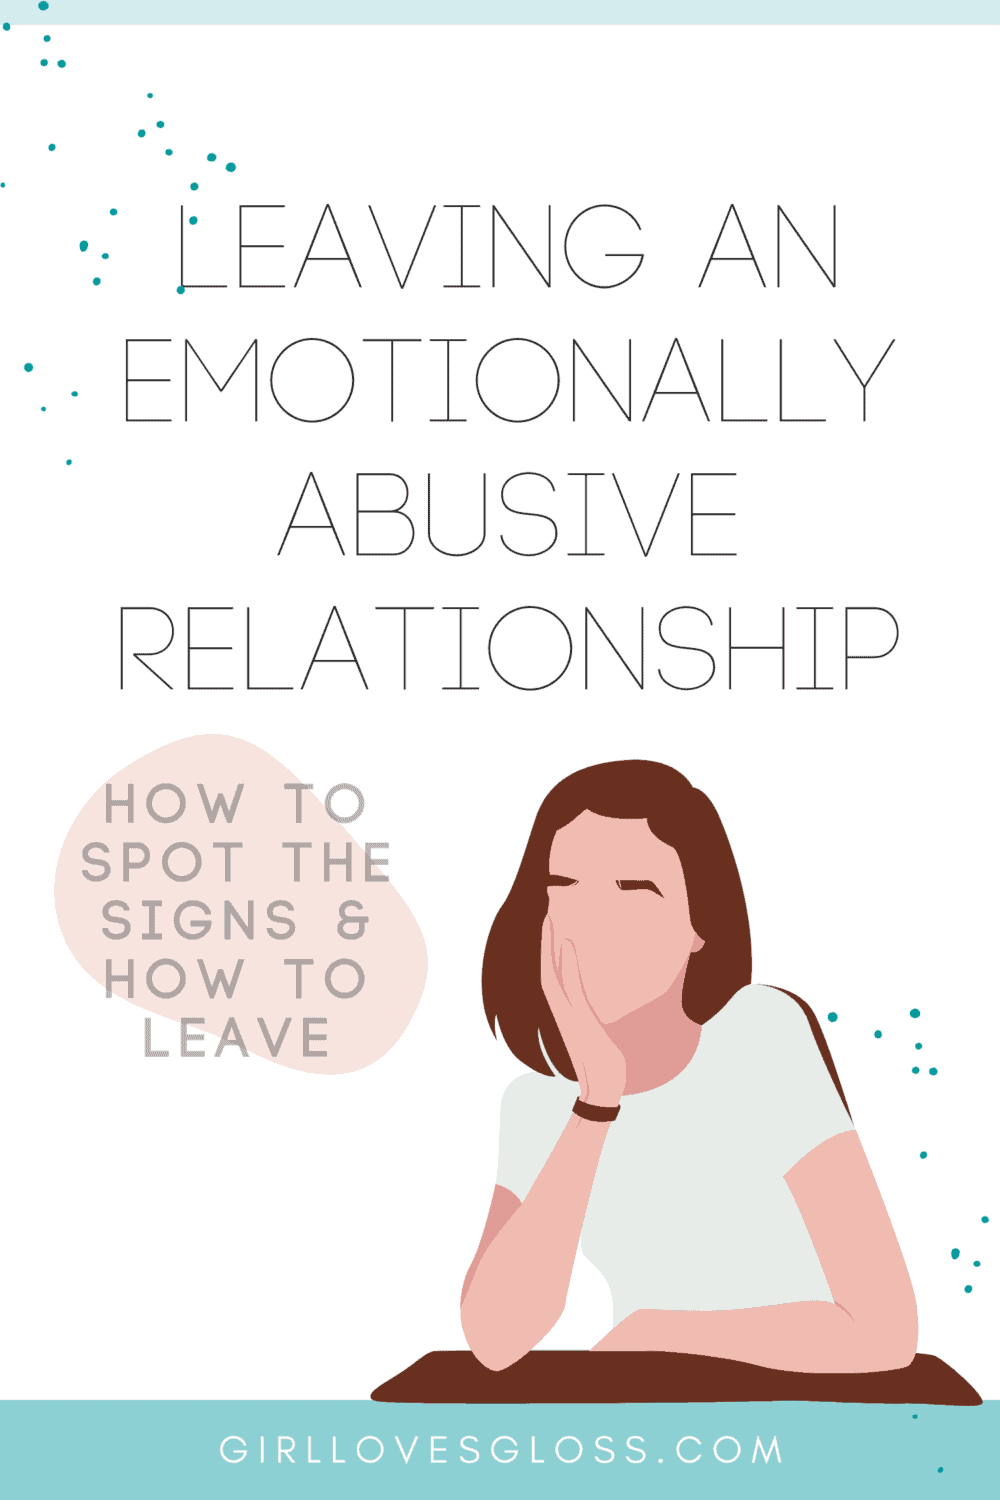 My story of being in an a emotionally abusive relationship and how I got out